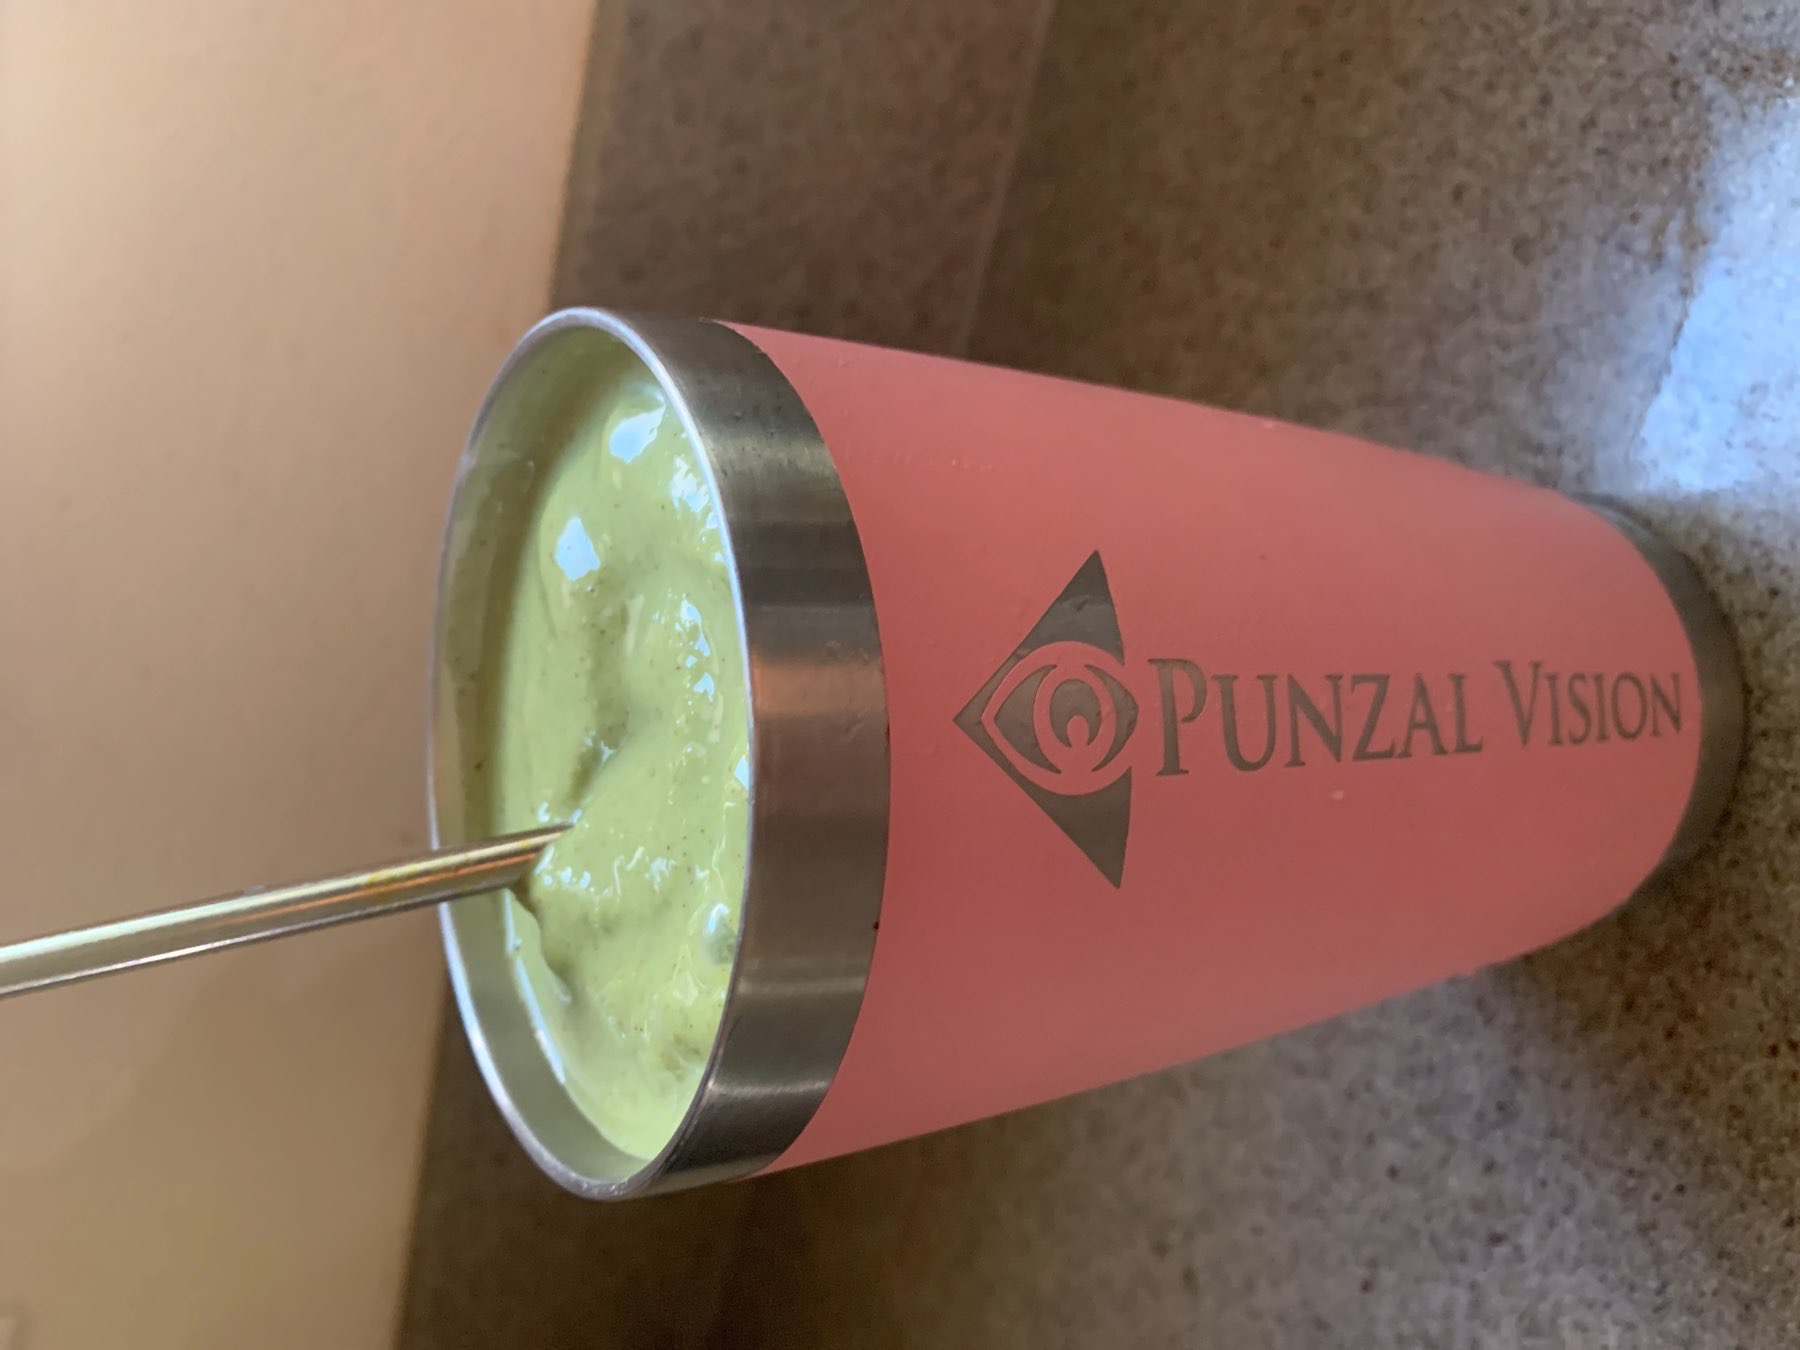 Healthy Green Smoothie in Punzal Vision cup.